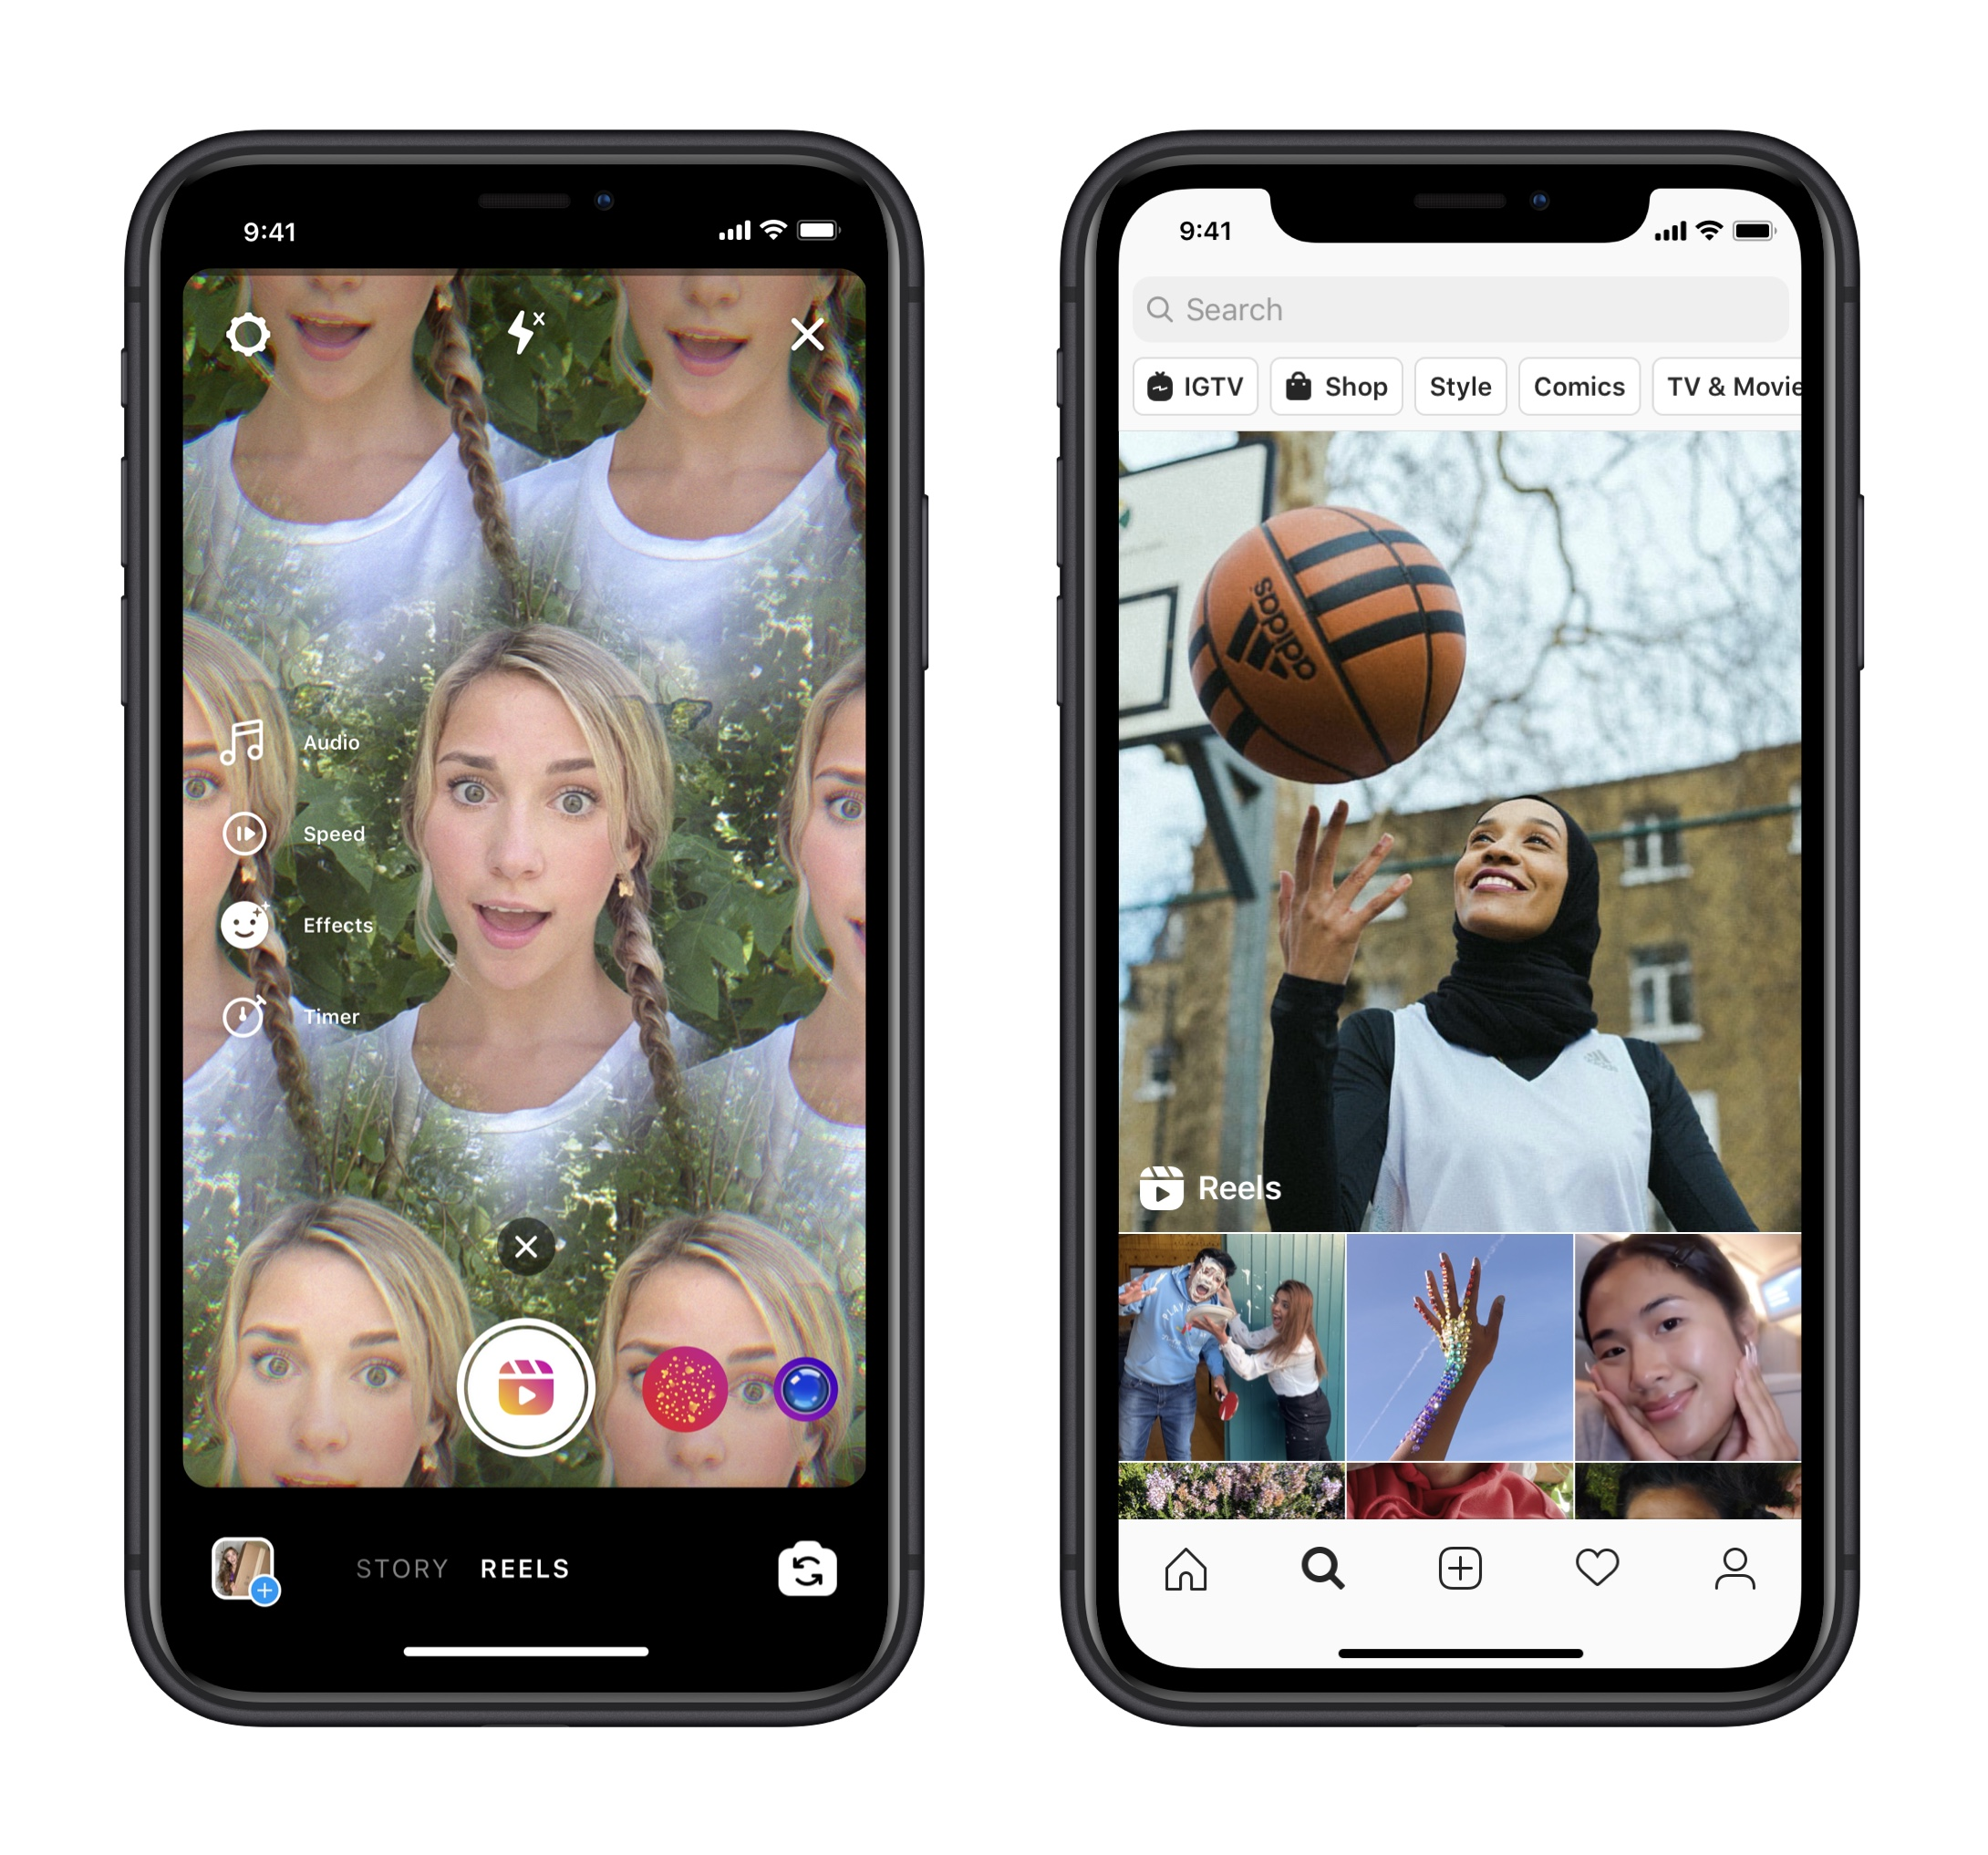 Instagram Reels Video Download For Free, Everything You Need To Know